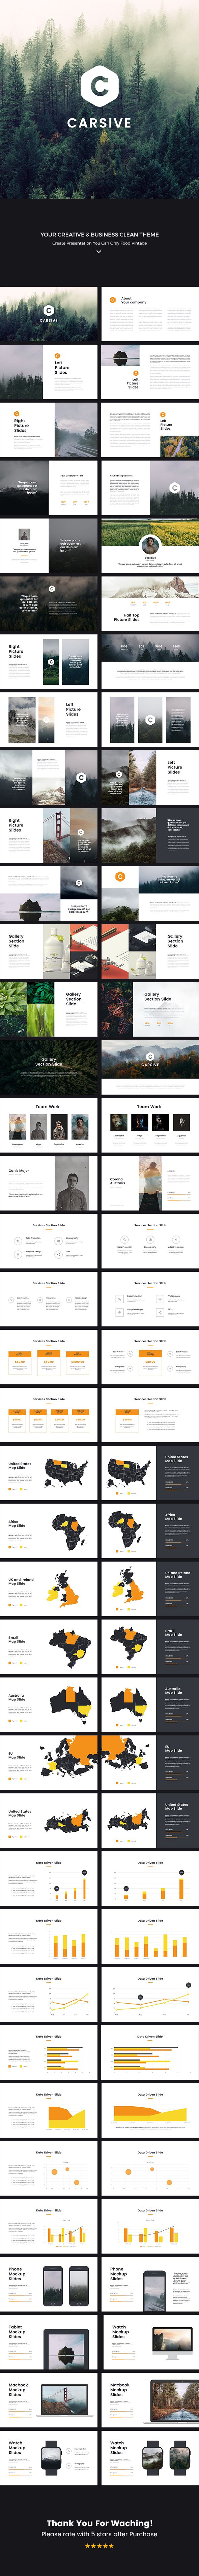 188 best presentation design layout images on pinterest keynote buy carsive clean powerpoint template by hipsterslide on graphicriver features pptx ppt files hd resolution slides no more broken images toneelgroepblik Image collections